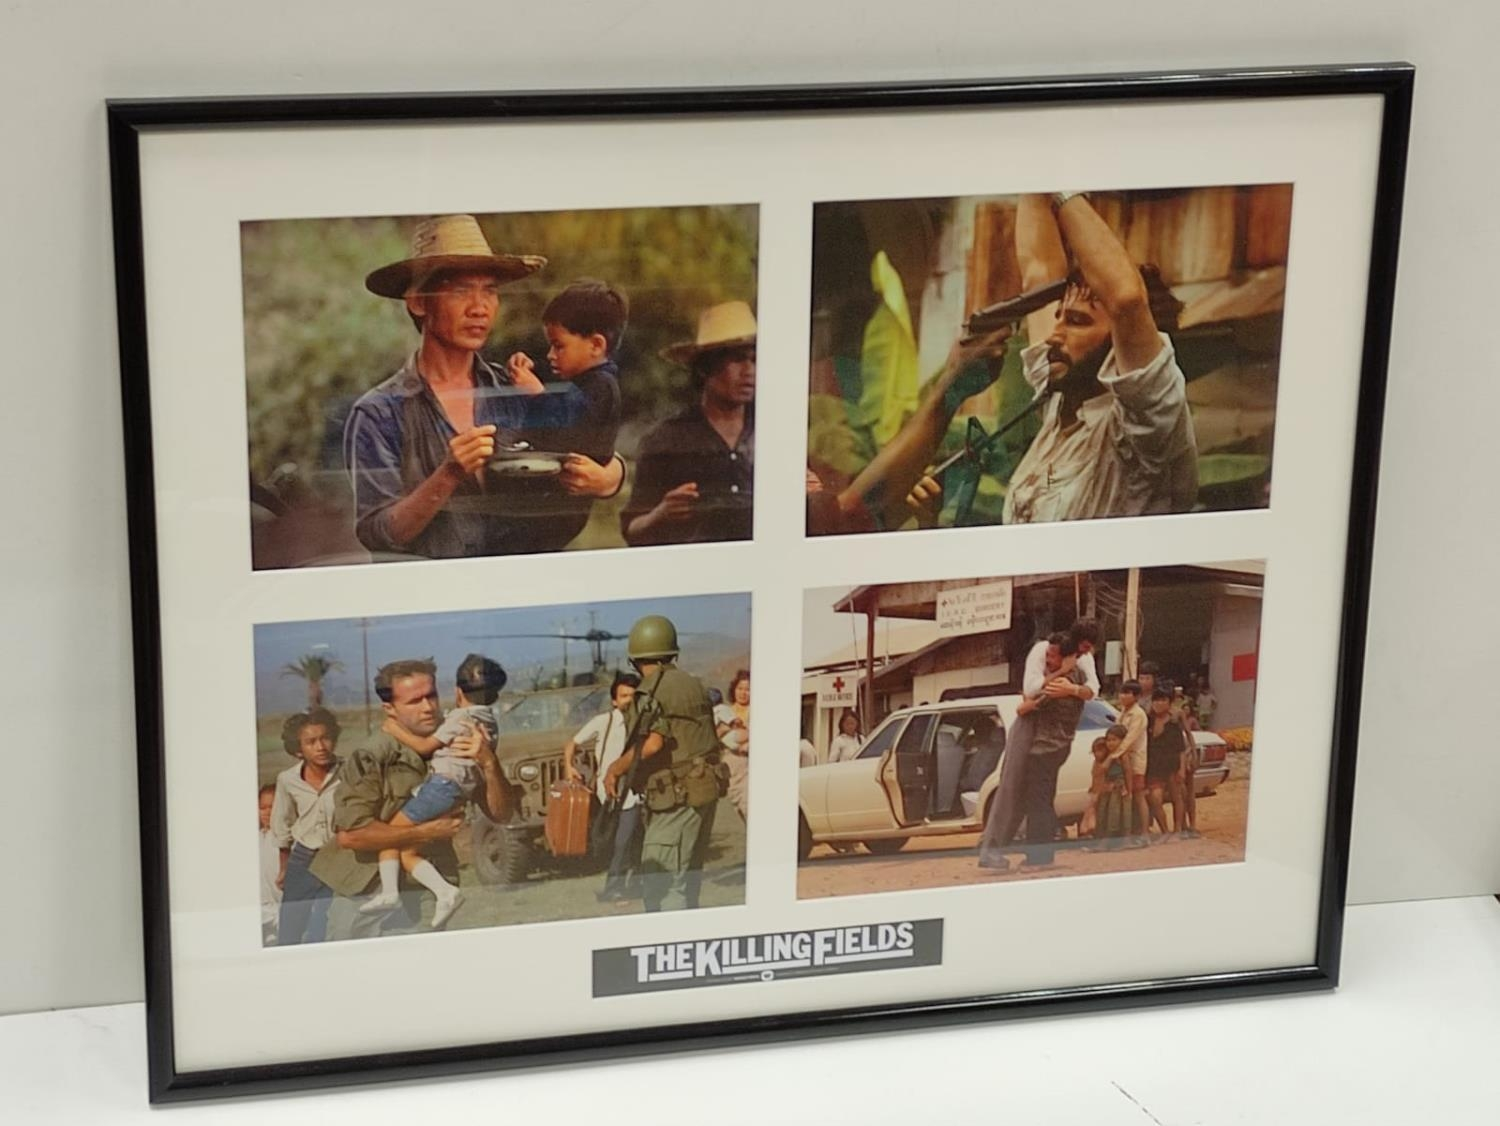 Framed and Glazed original film photographs from the film 'The Killing Fields'. Frame dimensions - Image 2 of 3